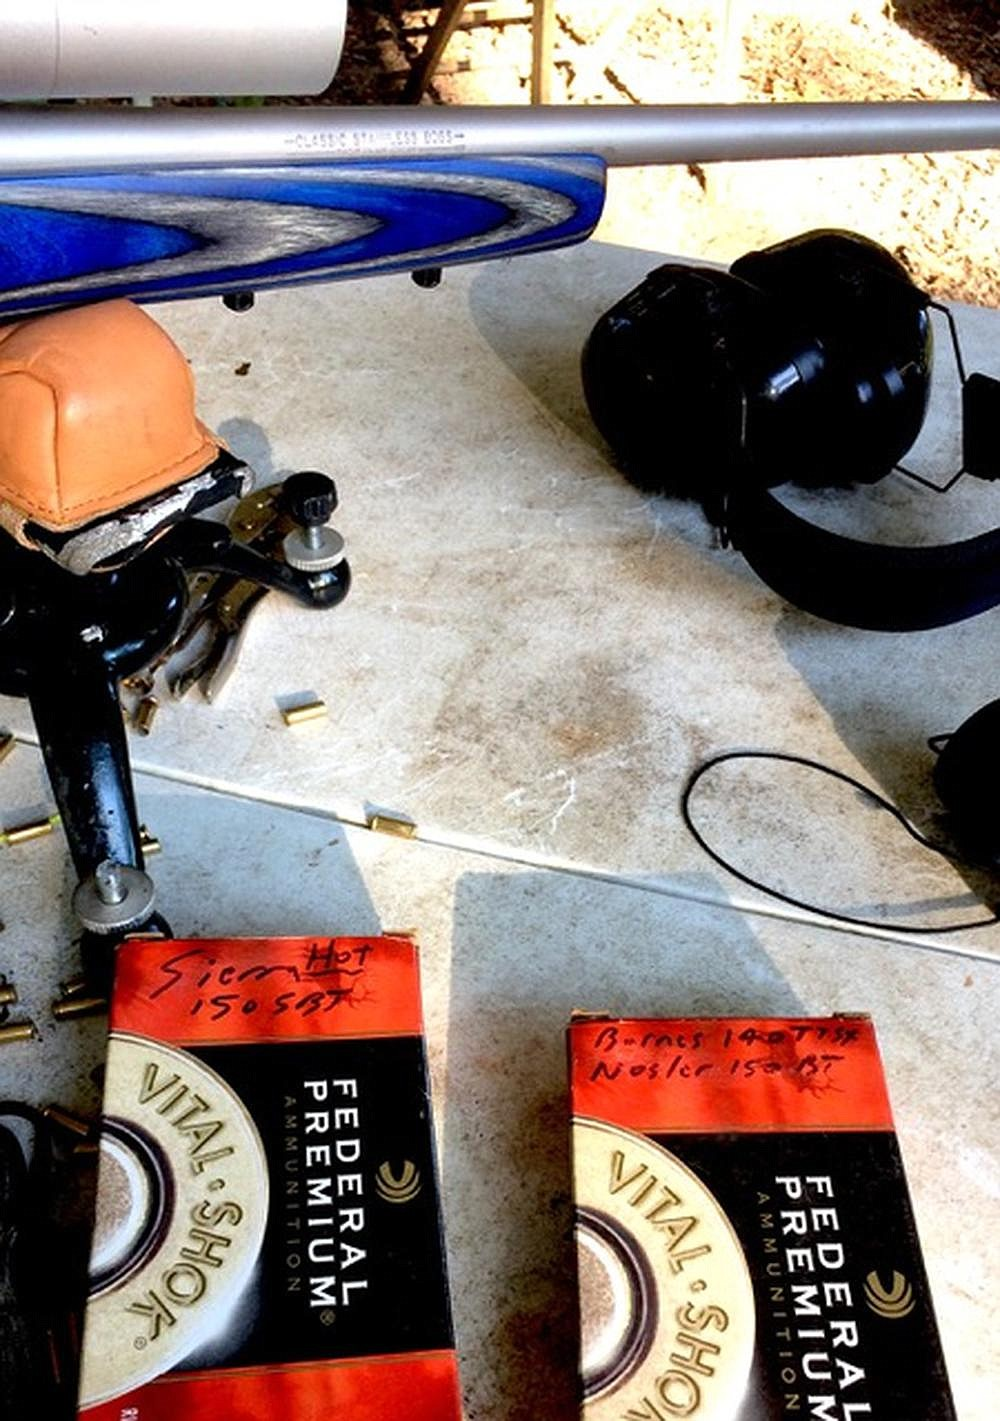 Using a simple Lee Classic Loader, the author built several different 7mm Magnum loads for hunting and target shooting. (Arkansas Democrat-Gazette/Bryan Hendricks)